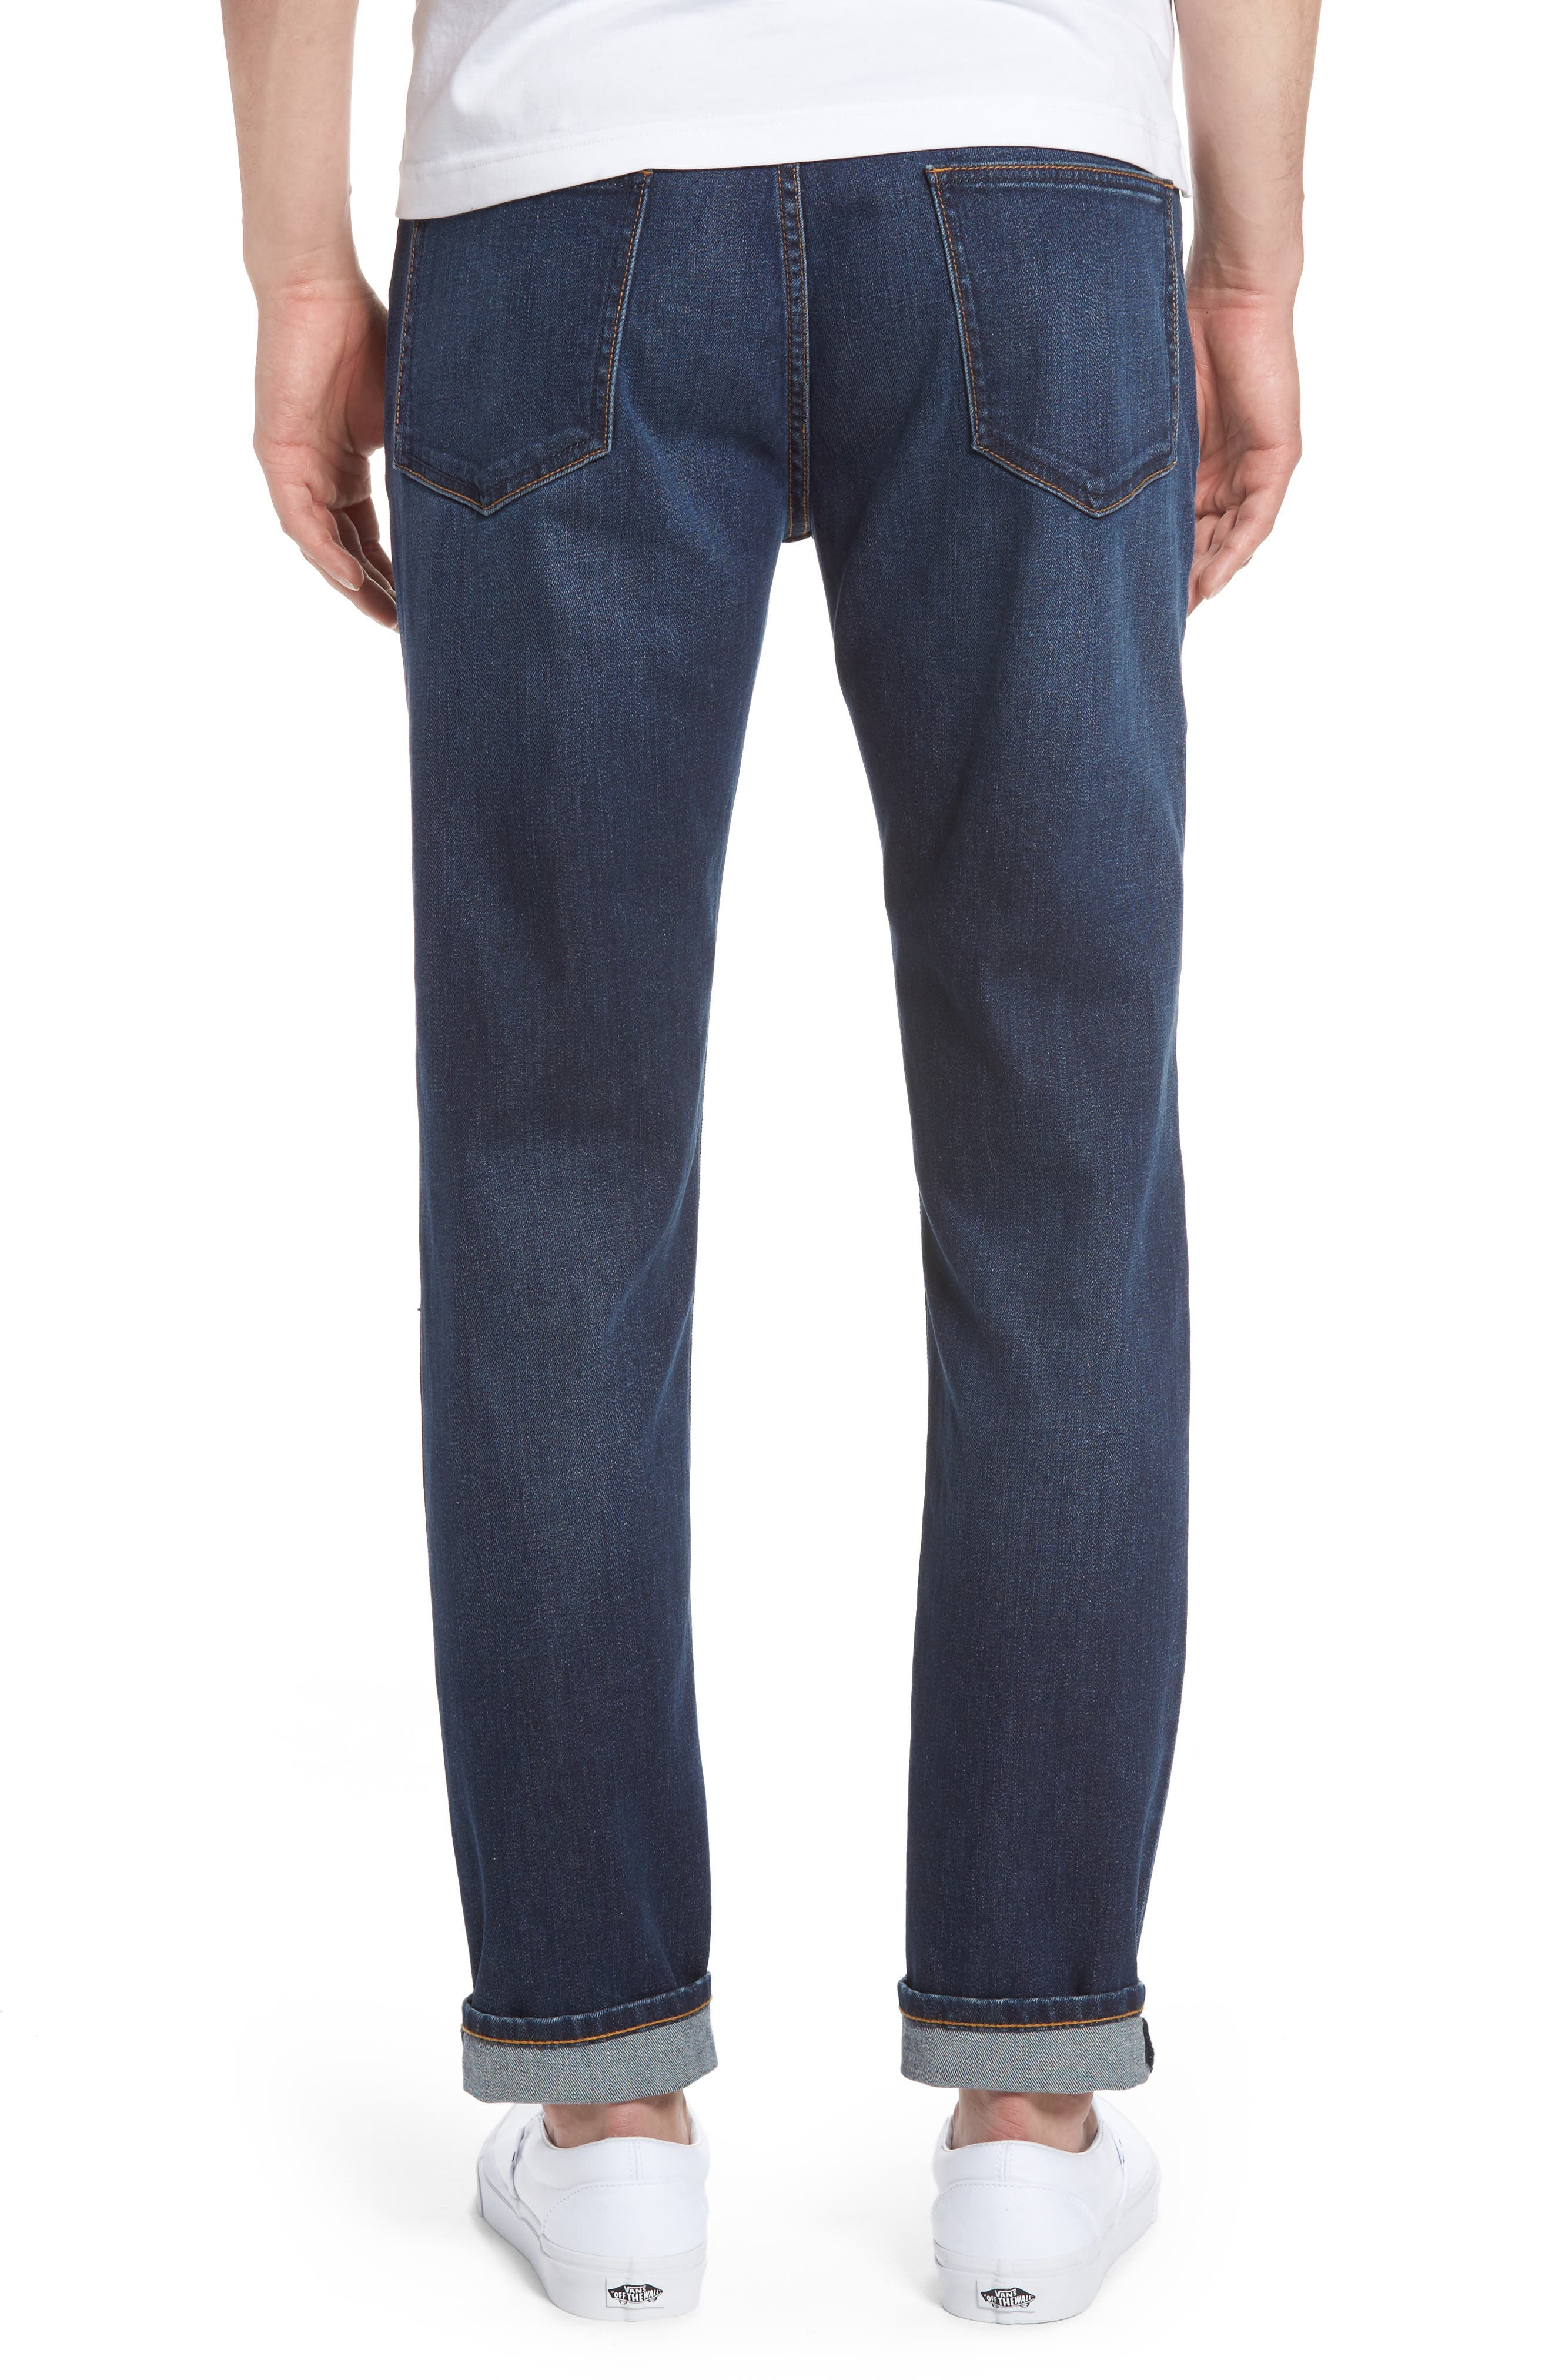 Stretch Skinny Fit Jeans,                             Alternate thumbnail 2, color,                             Indigo